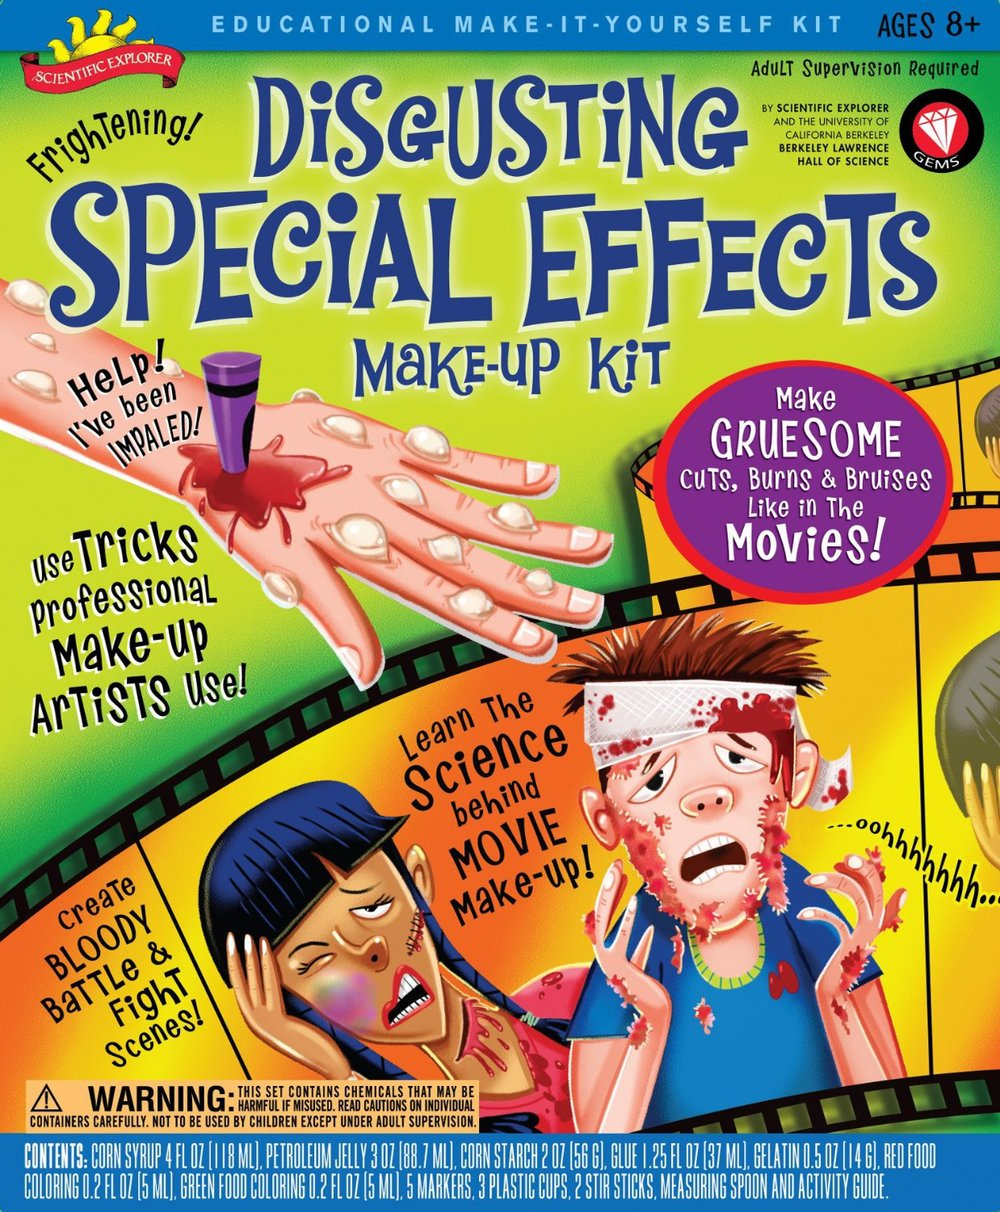 Disgusting Special Effects Make-up Kit, Ages 8+  $19.99